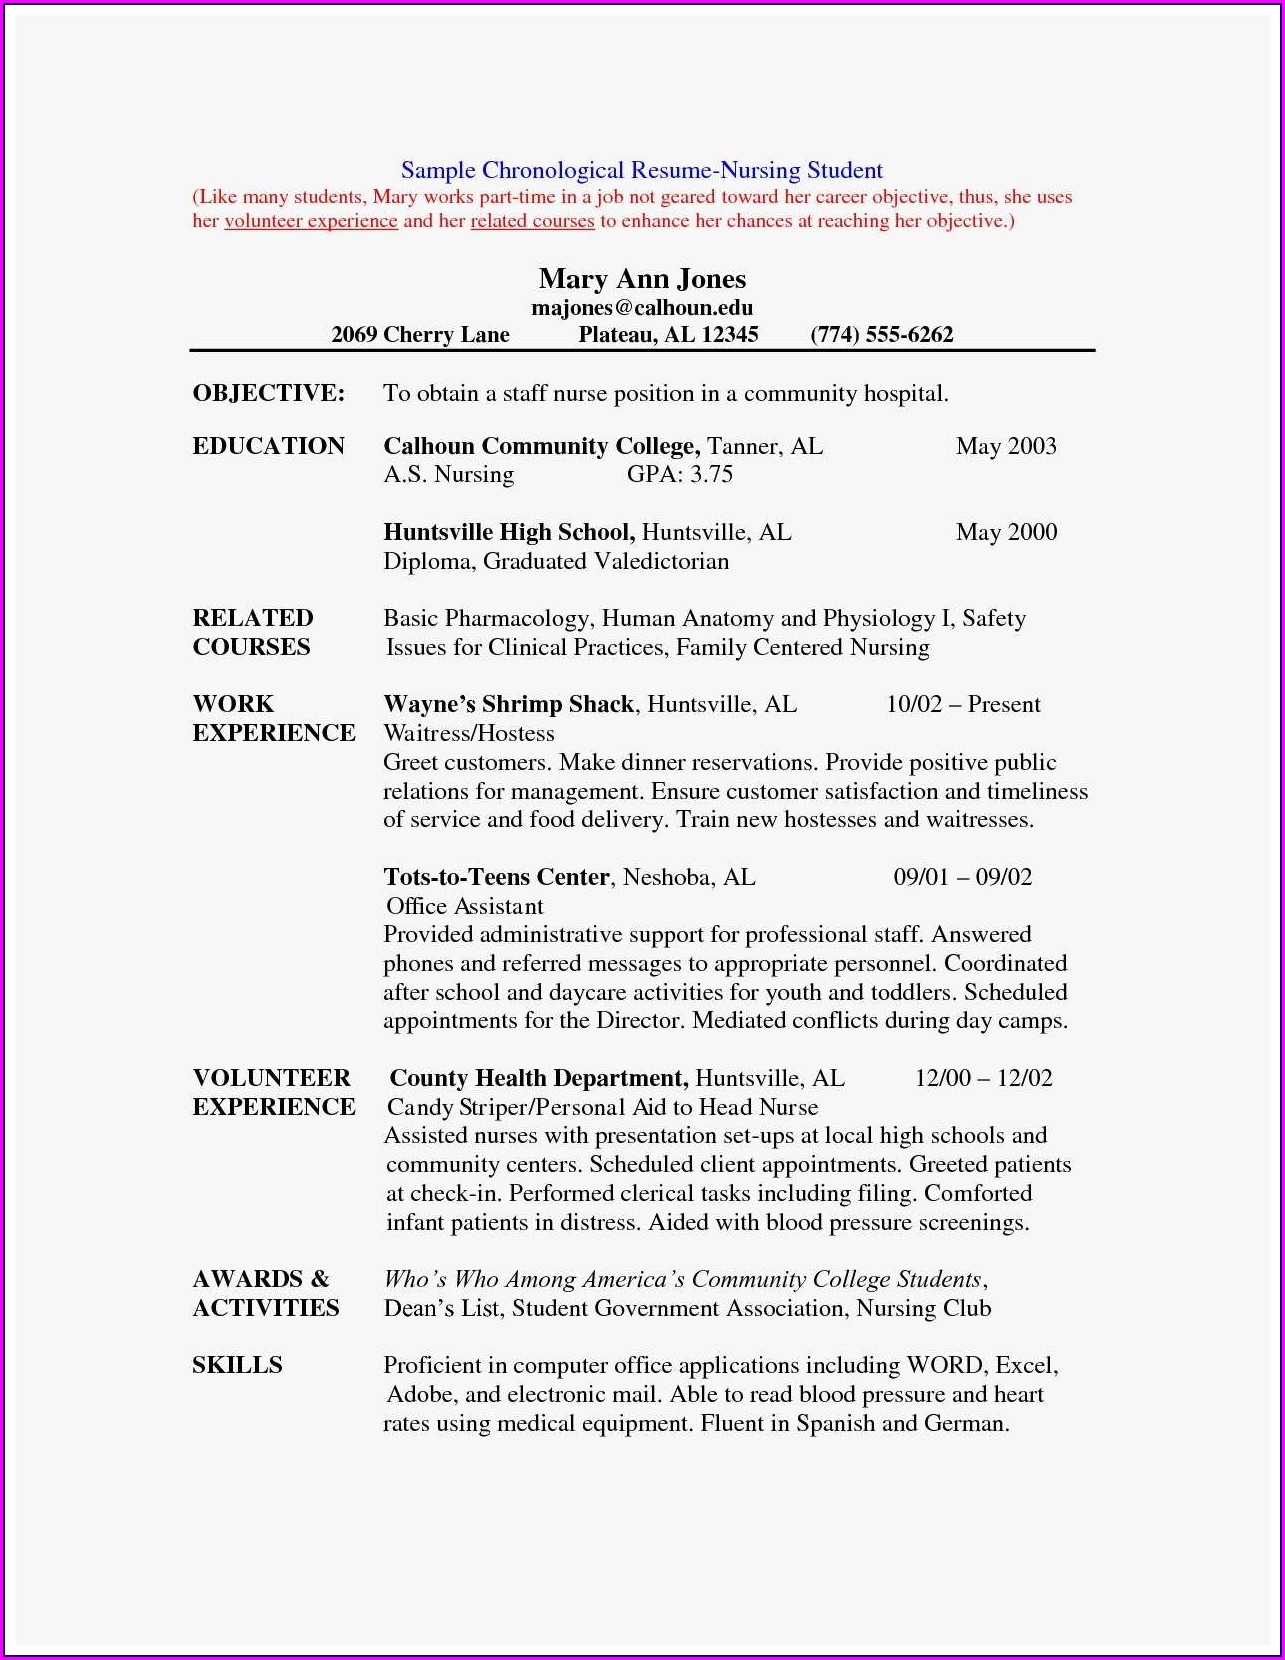 Sample Resume For Newly Graduated Nursing Student